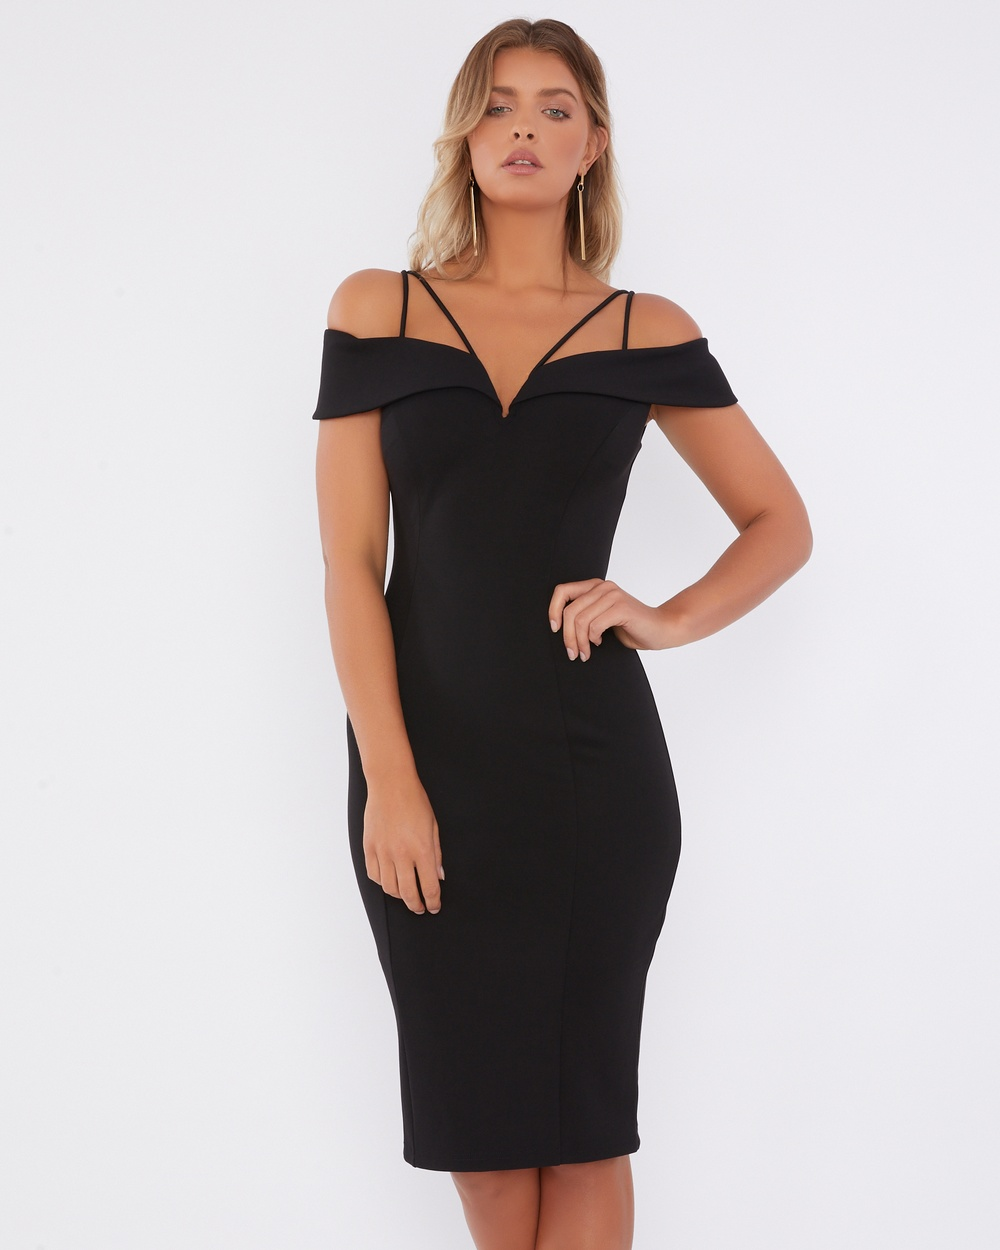 Buy Calli Ada Off Shoulder Dress Bodycon Dresses Black Ada Off-Shoulder Dress -  shop Calli dresses online